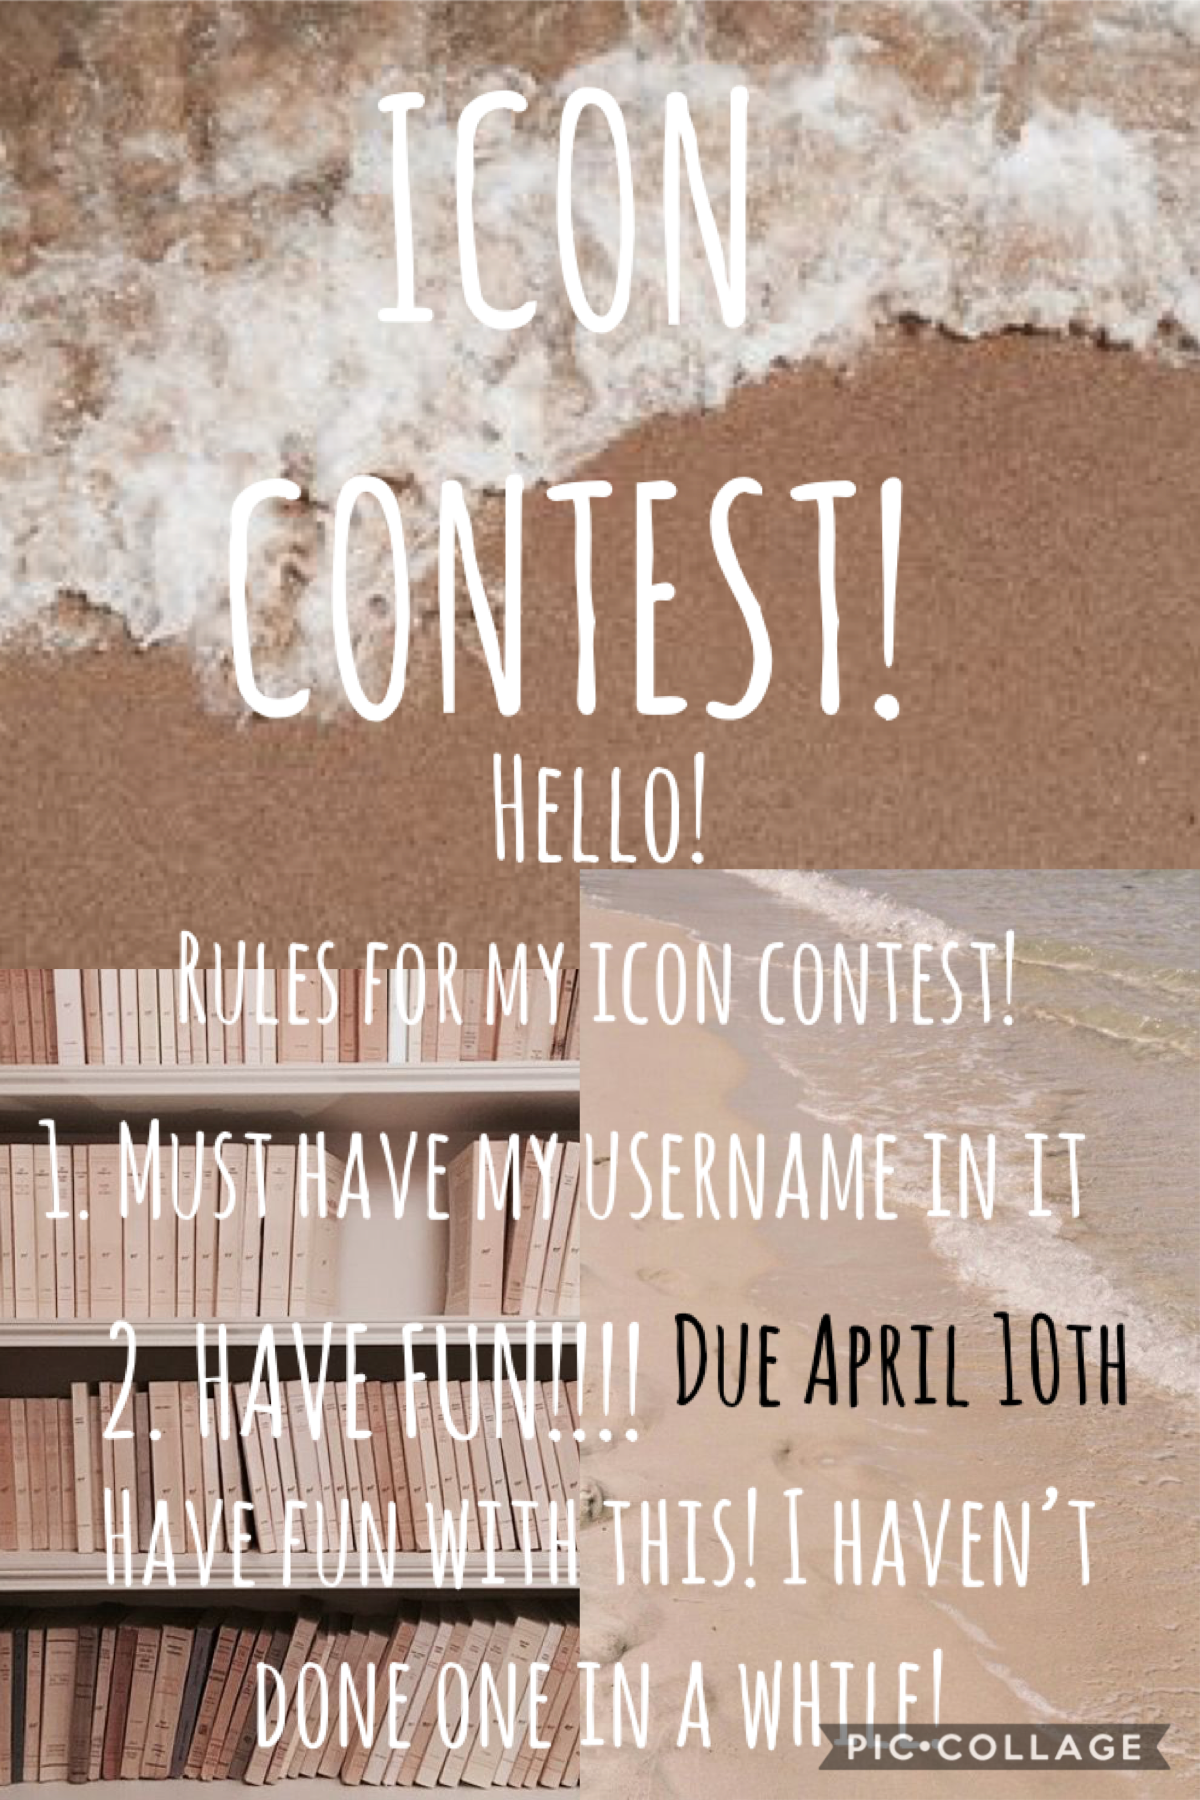 Icon contest!! I haven't done one in a while and if I did no one did it. lol but I'm trying again!! Okie so like it says It has to have my username in it and Have fun!!!! It's also due APRIL 10TH idk if that's too long, whoever creates the best icon for m